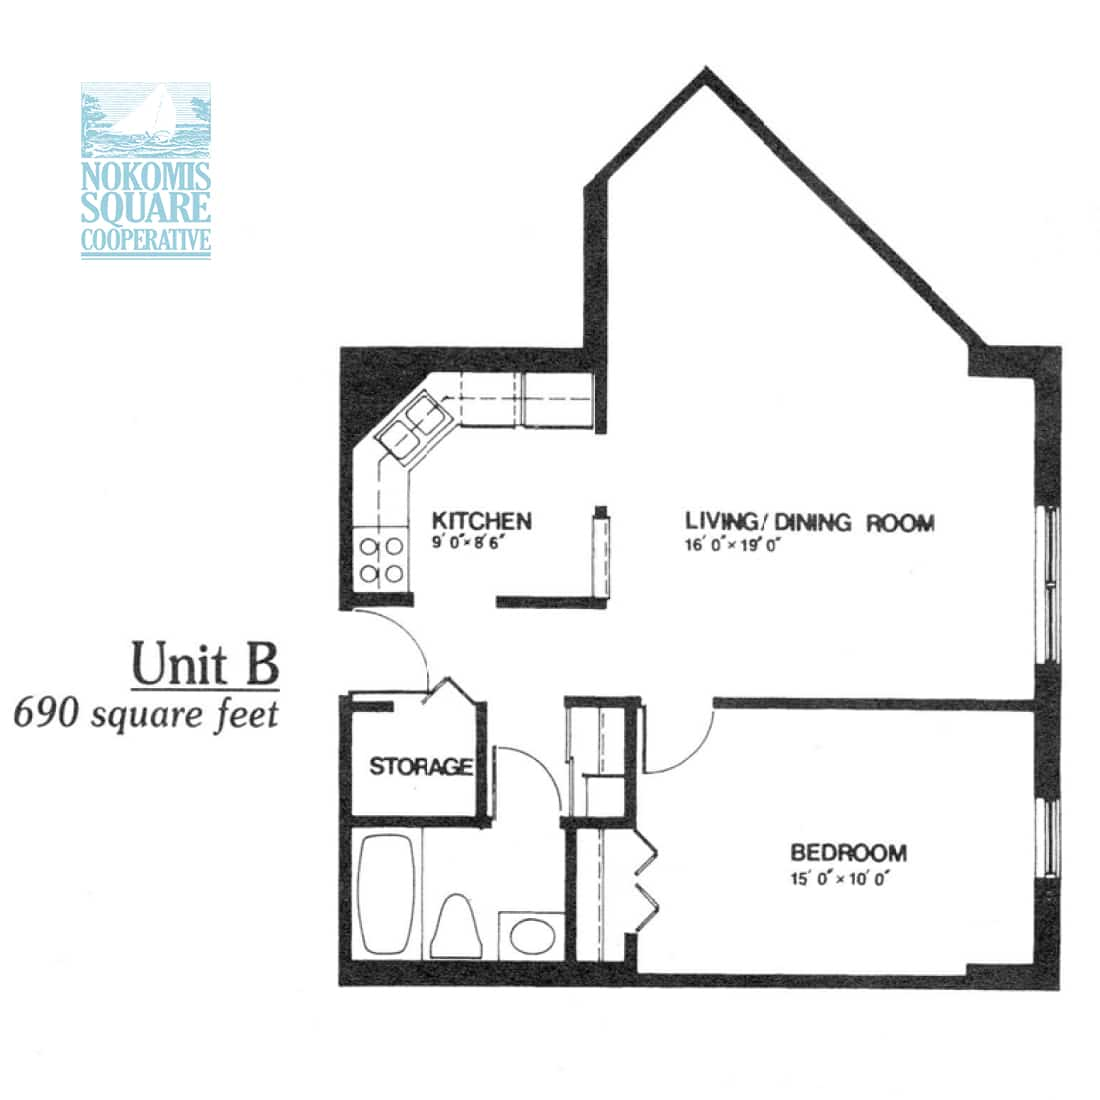 1 br Floorplan Unit B - Nokomis Square Senior Cooperative